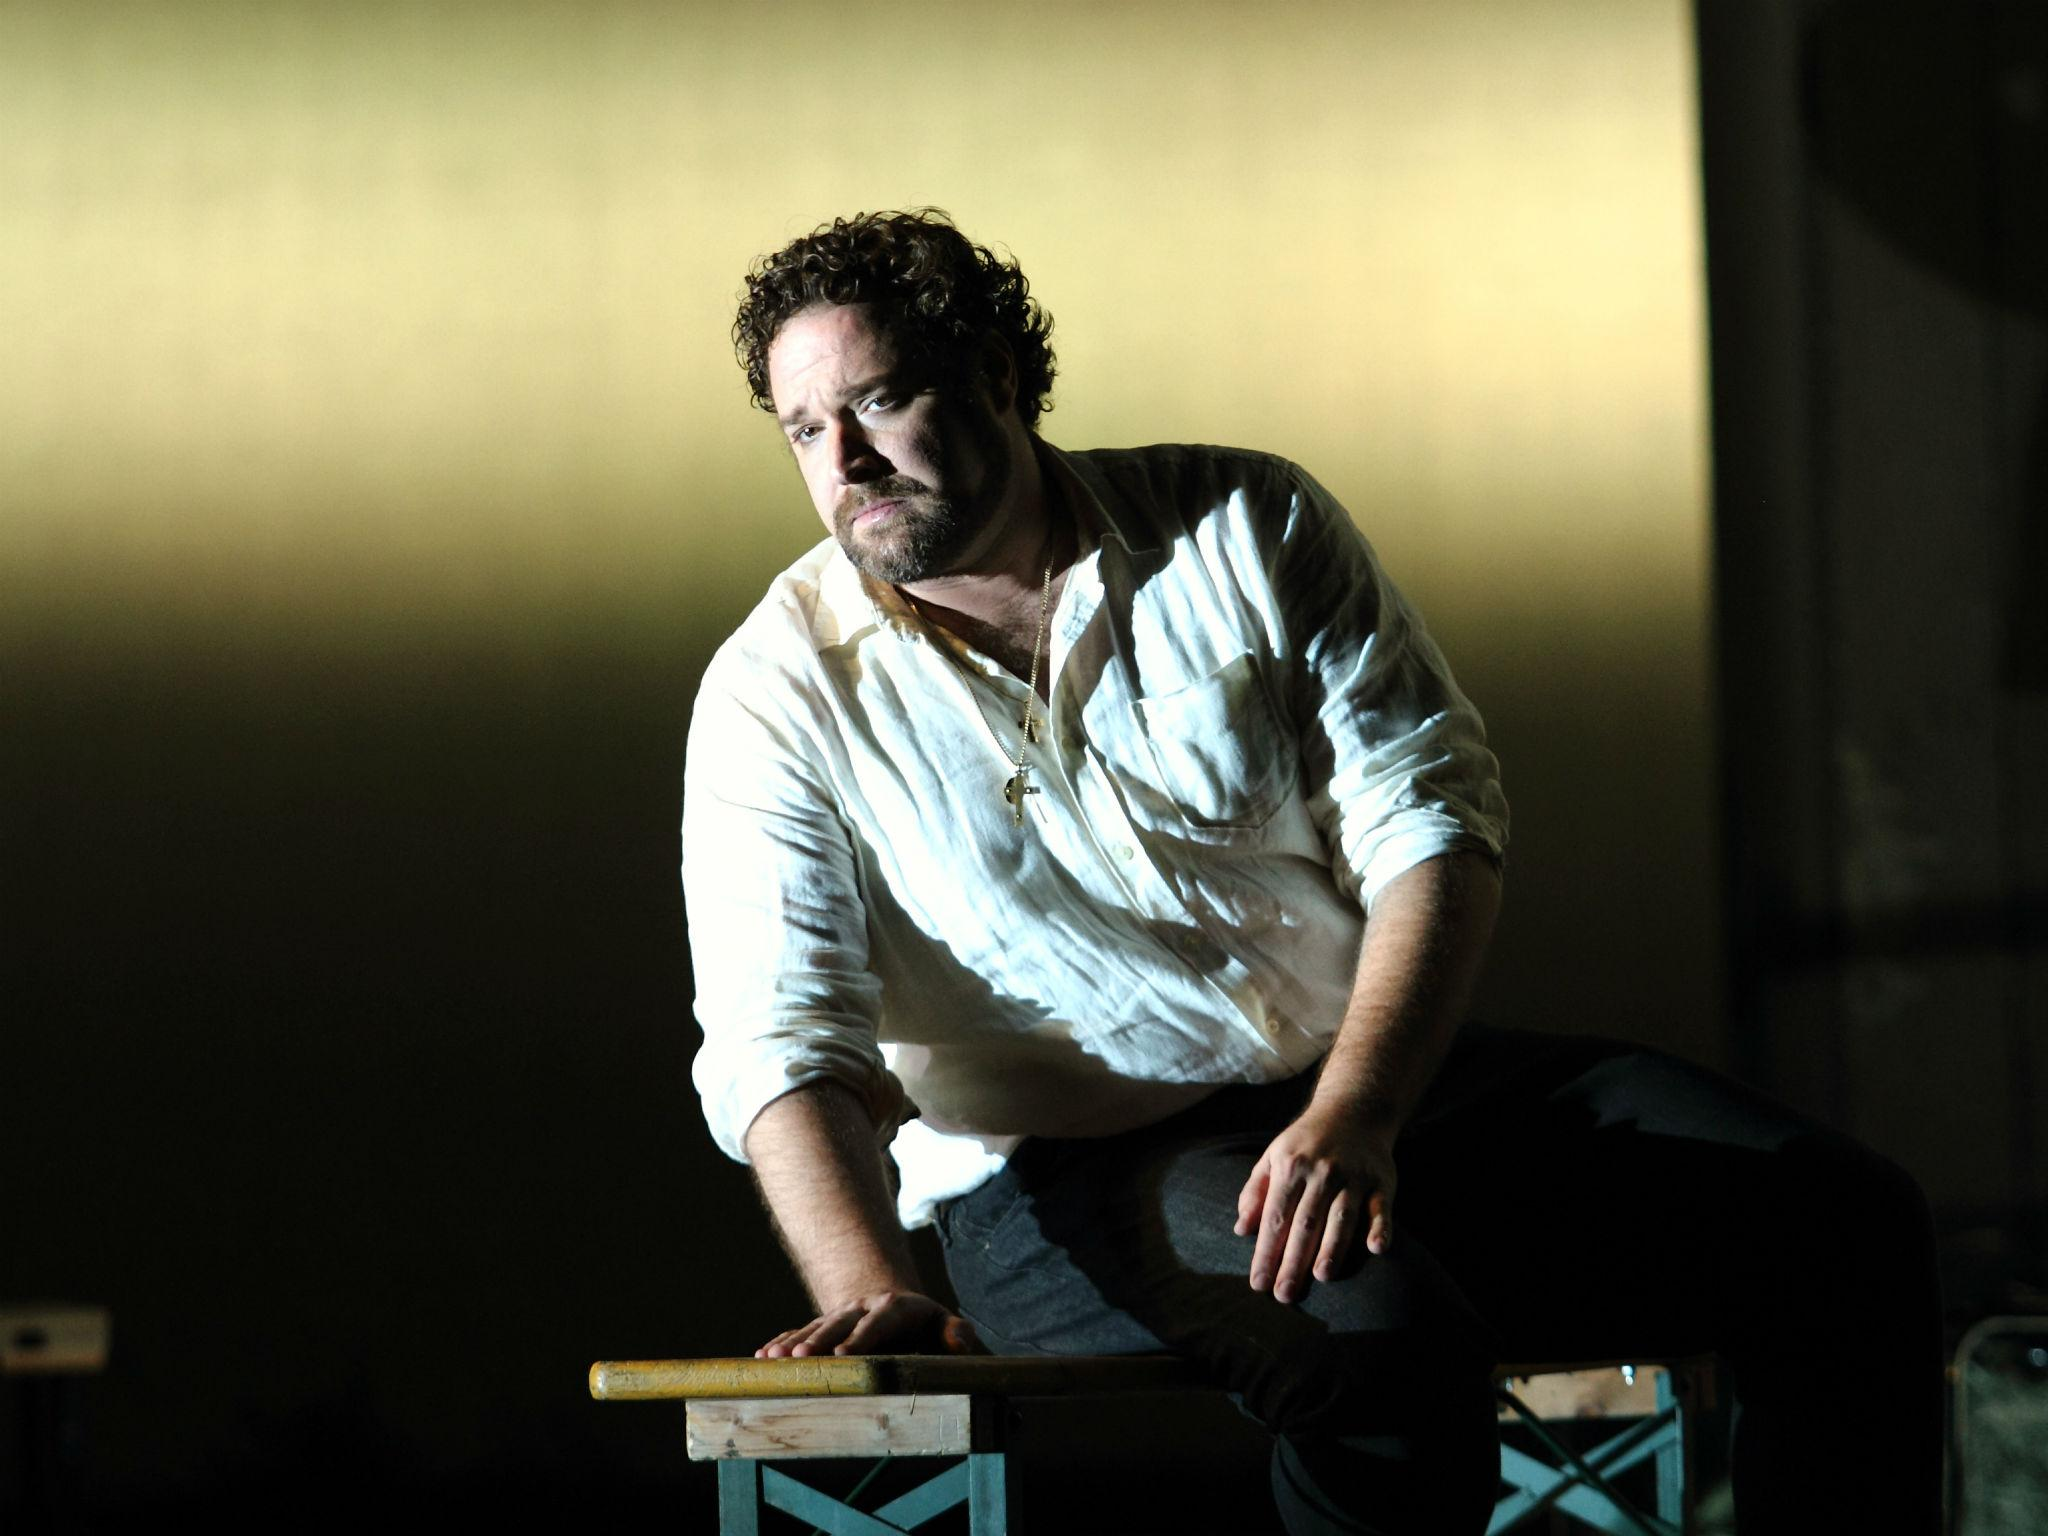 Cavalleria Rusticana / Pagliacci, Royal Opera House, London, review: Bryan Hymel gave a towering performance